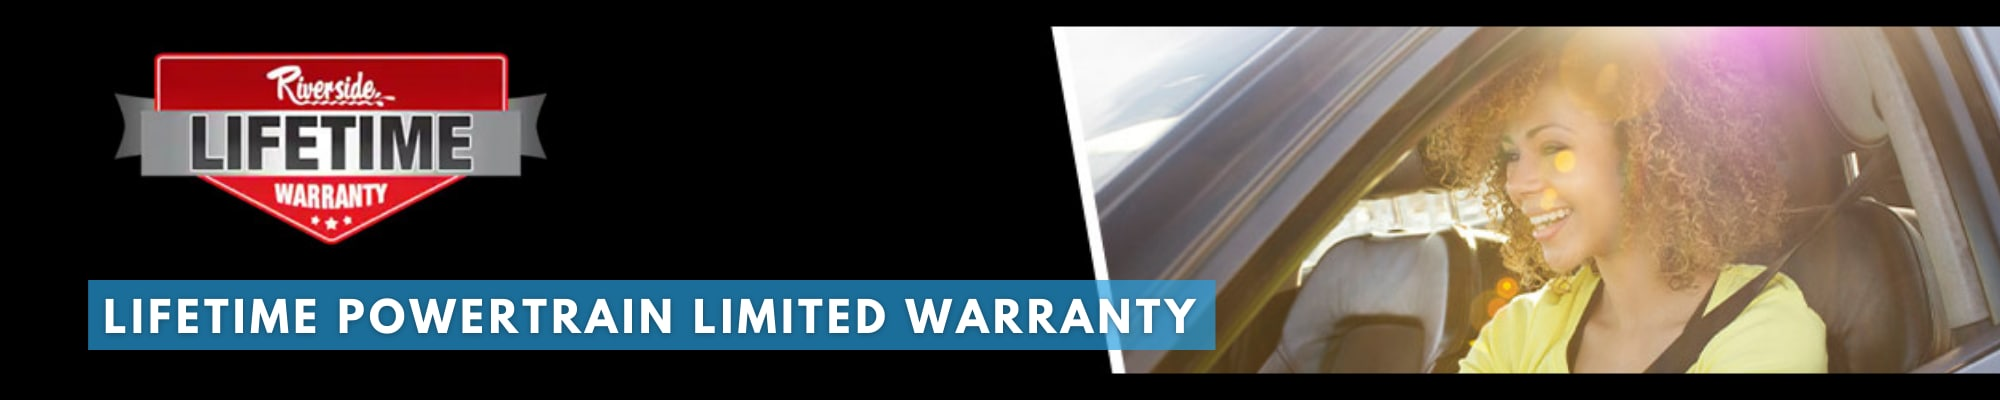 LIFETIME POWERTRAIN LIMITED WARRANTY | Havelock, NC